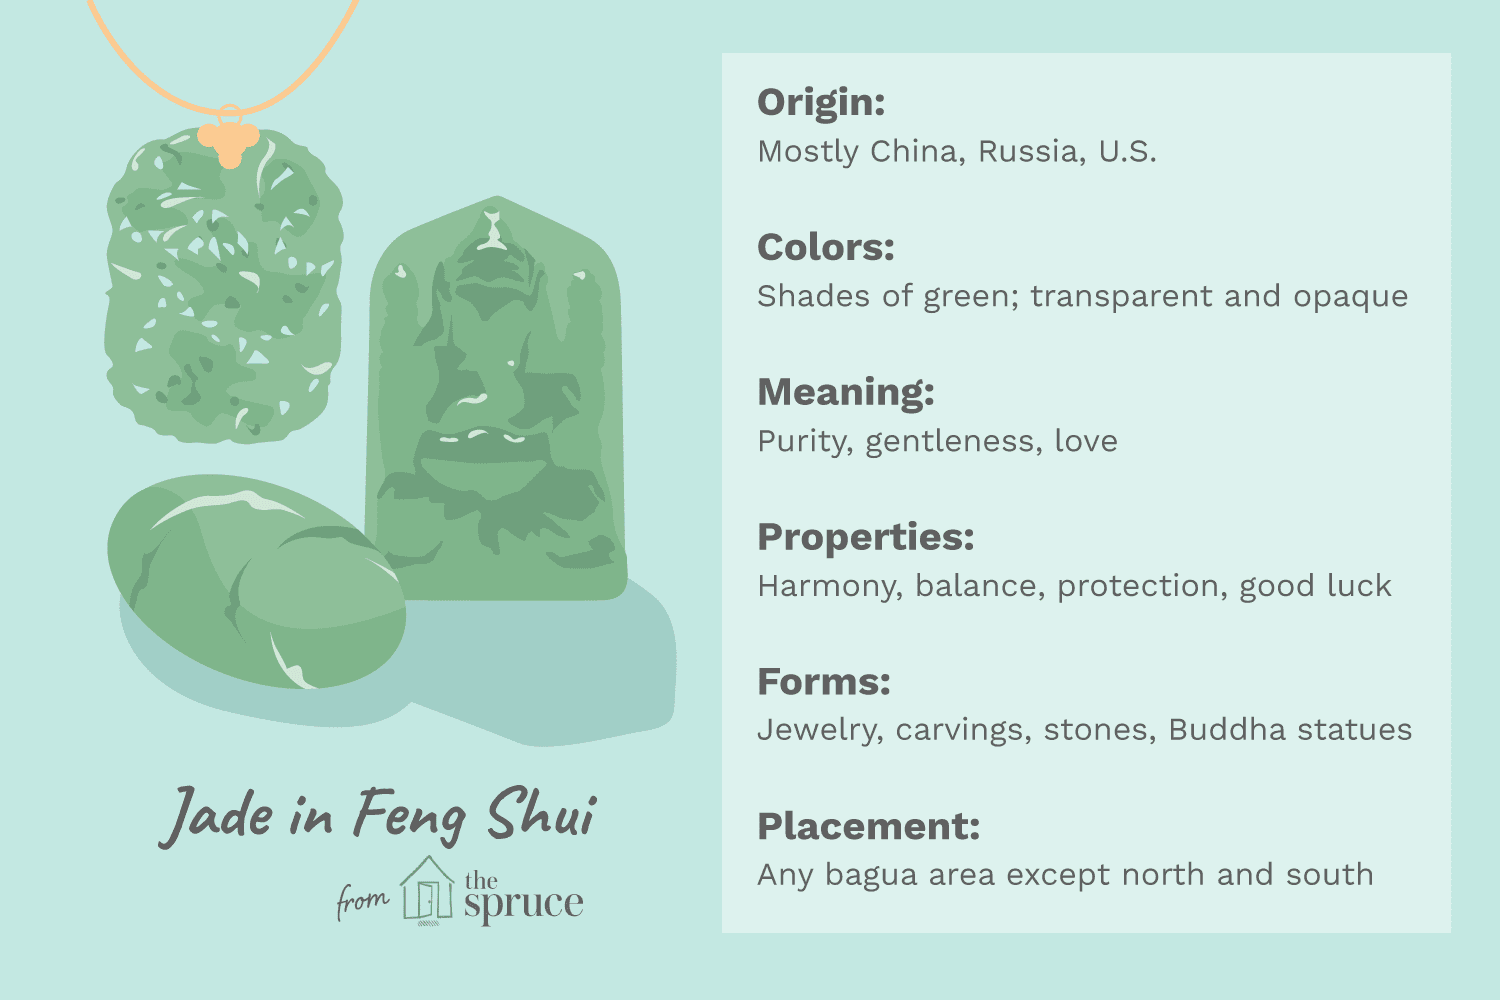 The Use Of Jade In Feng Shui